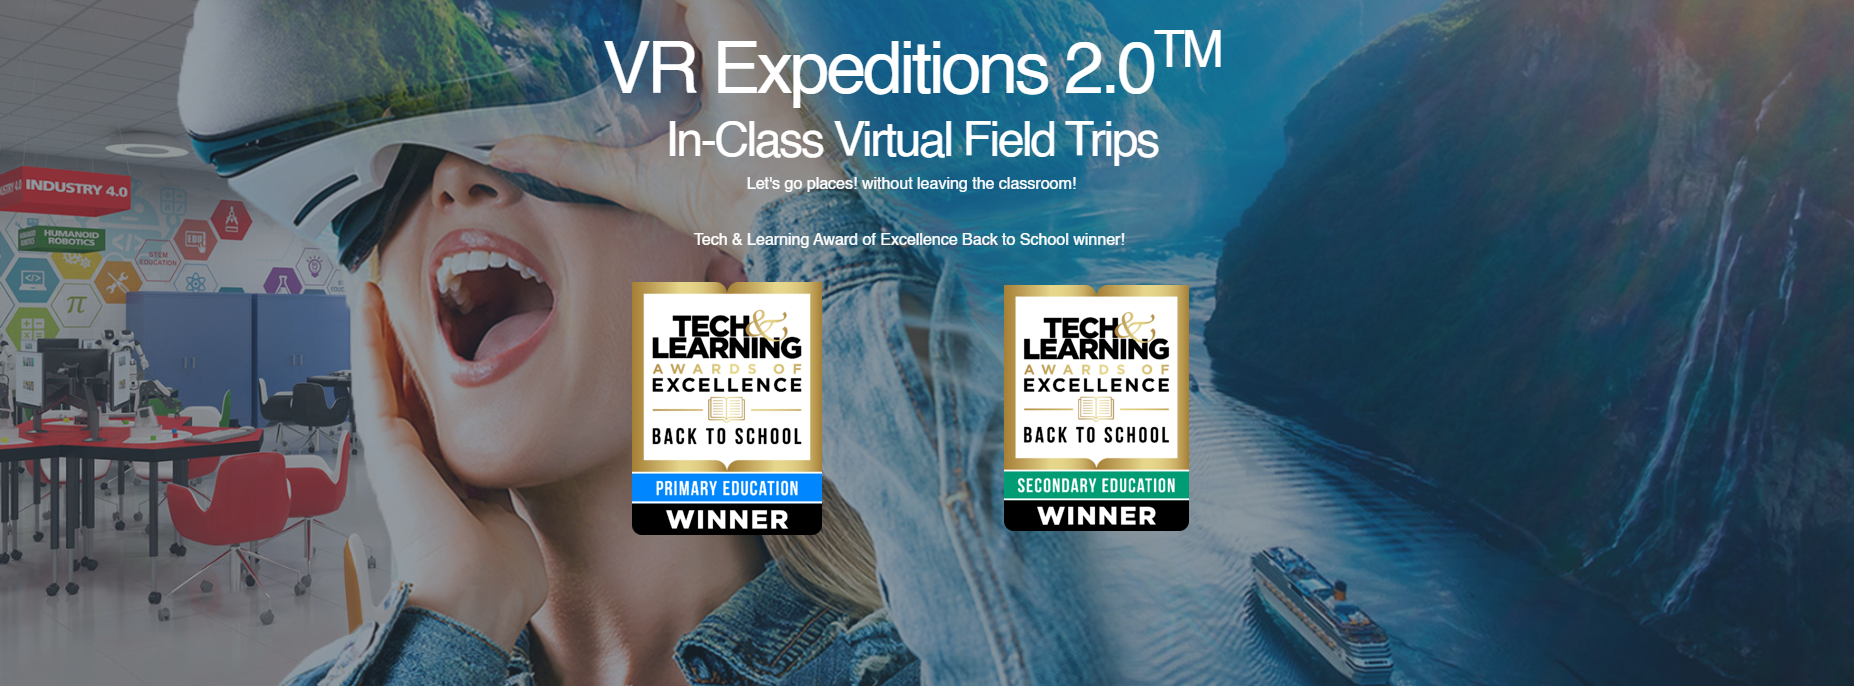 VR Expeditions 2.0-Winner-Tech&Learning